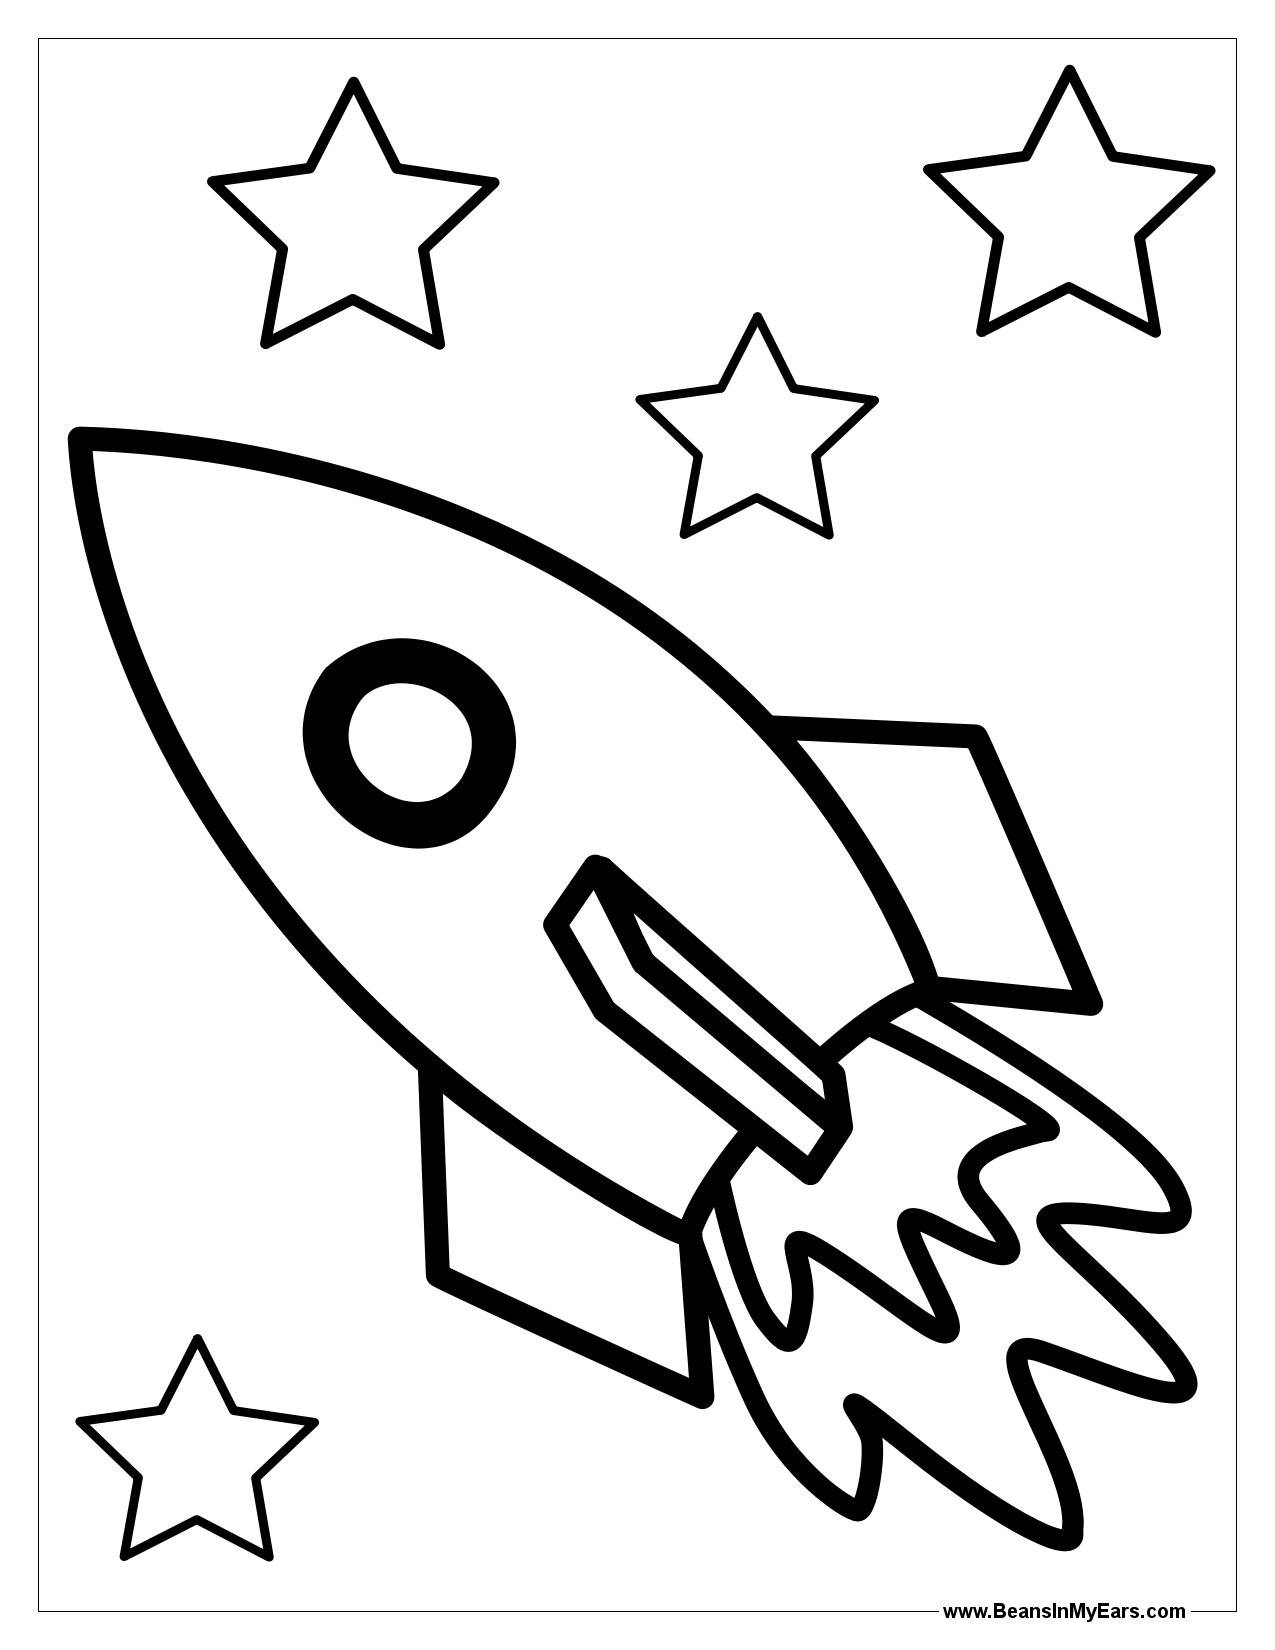 rocketship coloring pages - photo#21